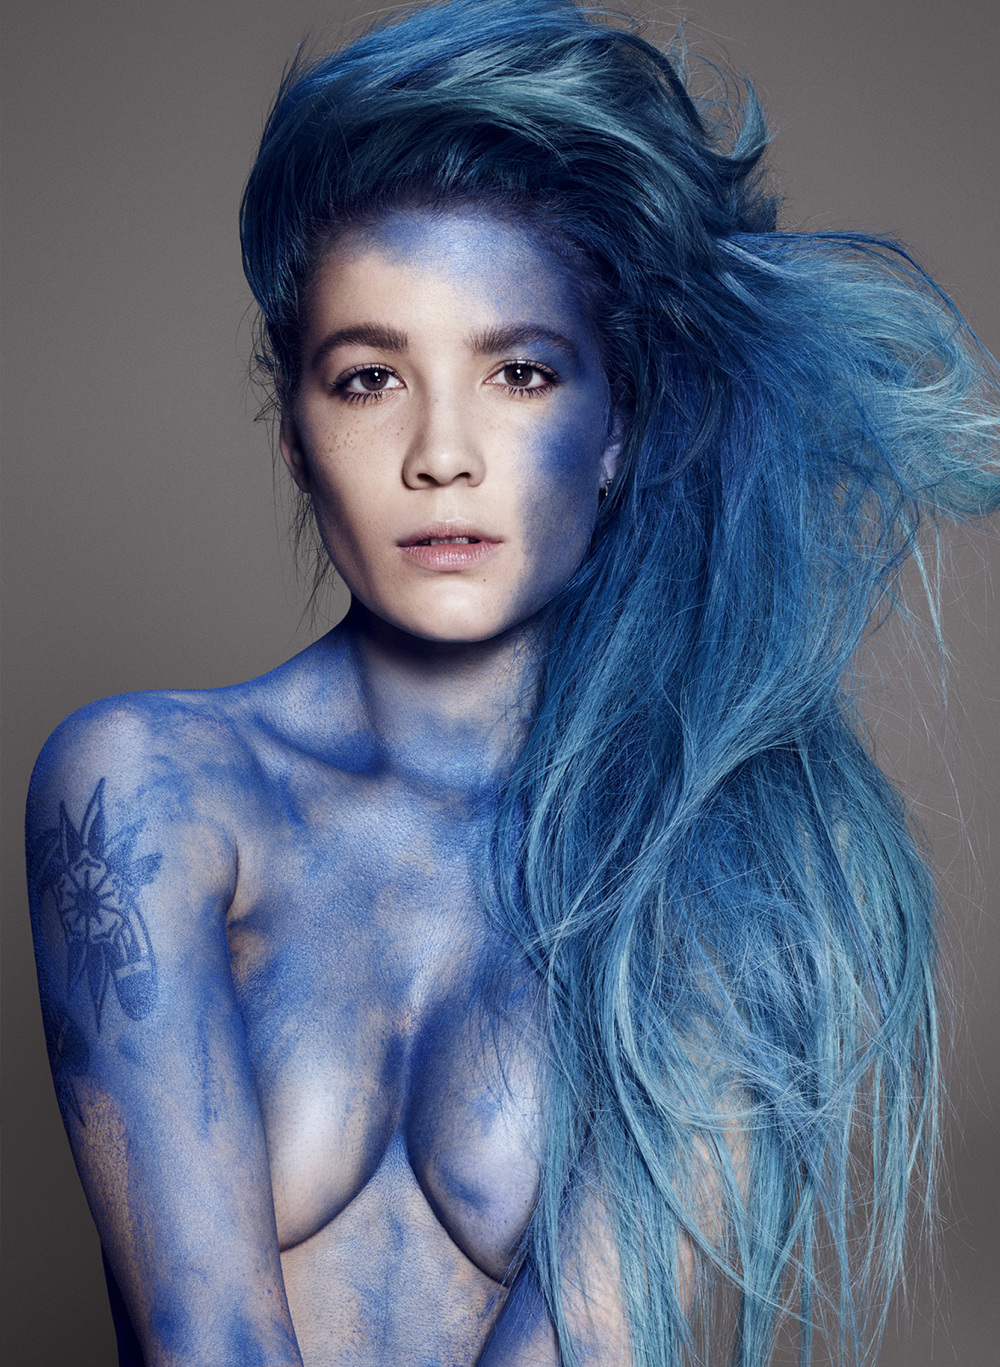 Halsey in a photoshoot for Elle magazine, where she first announced her Bipolar disorder.